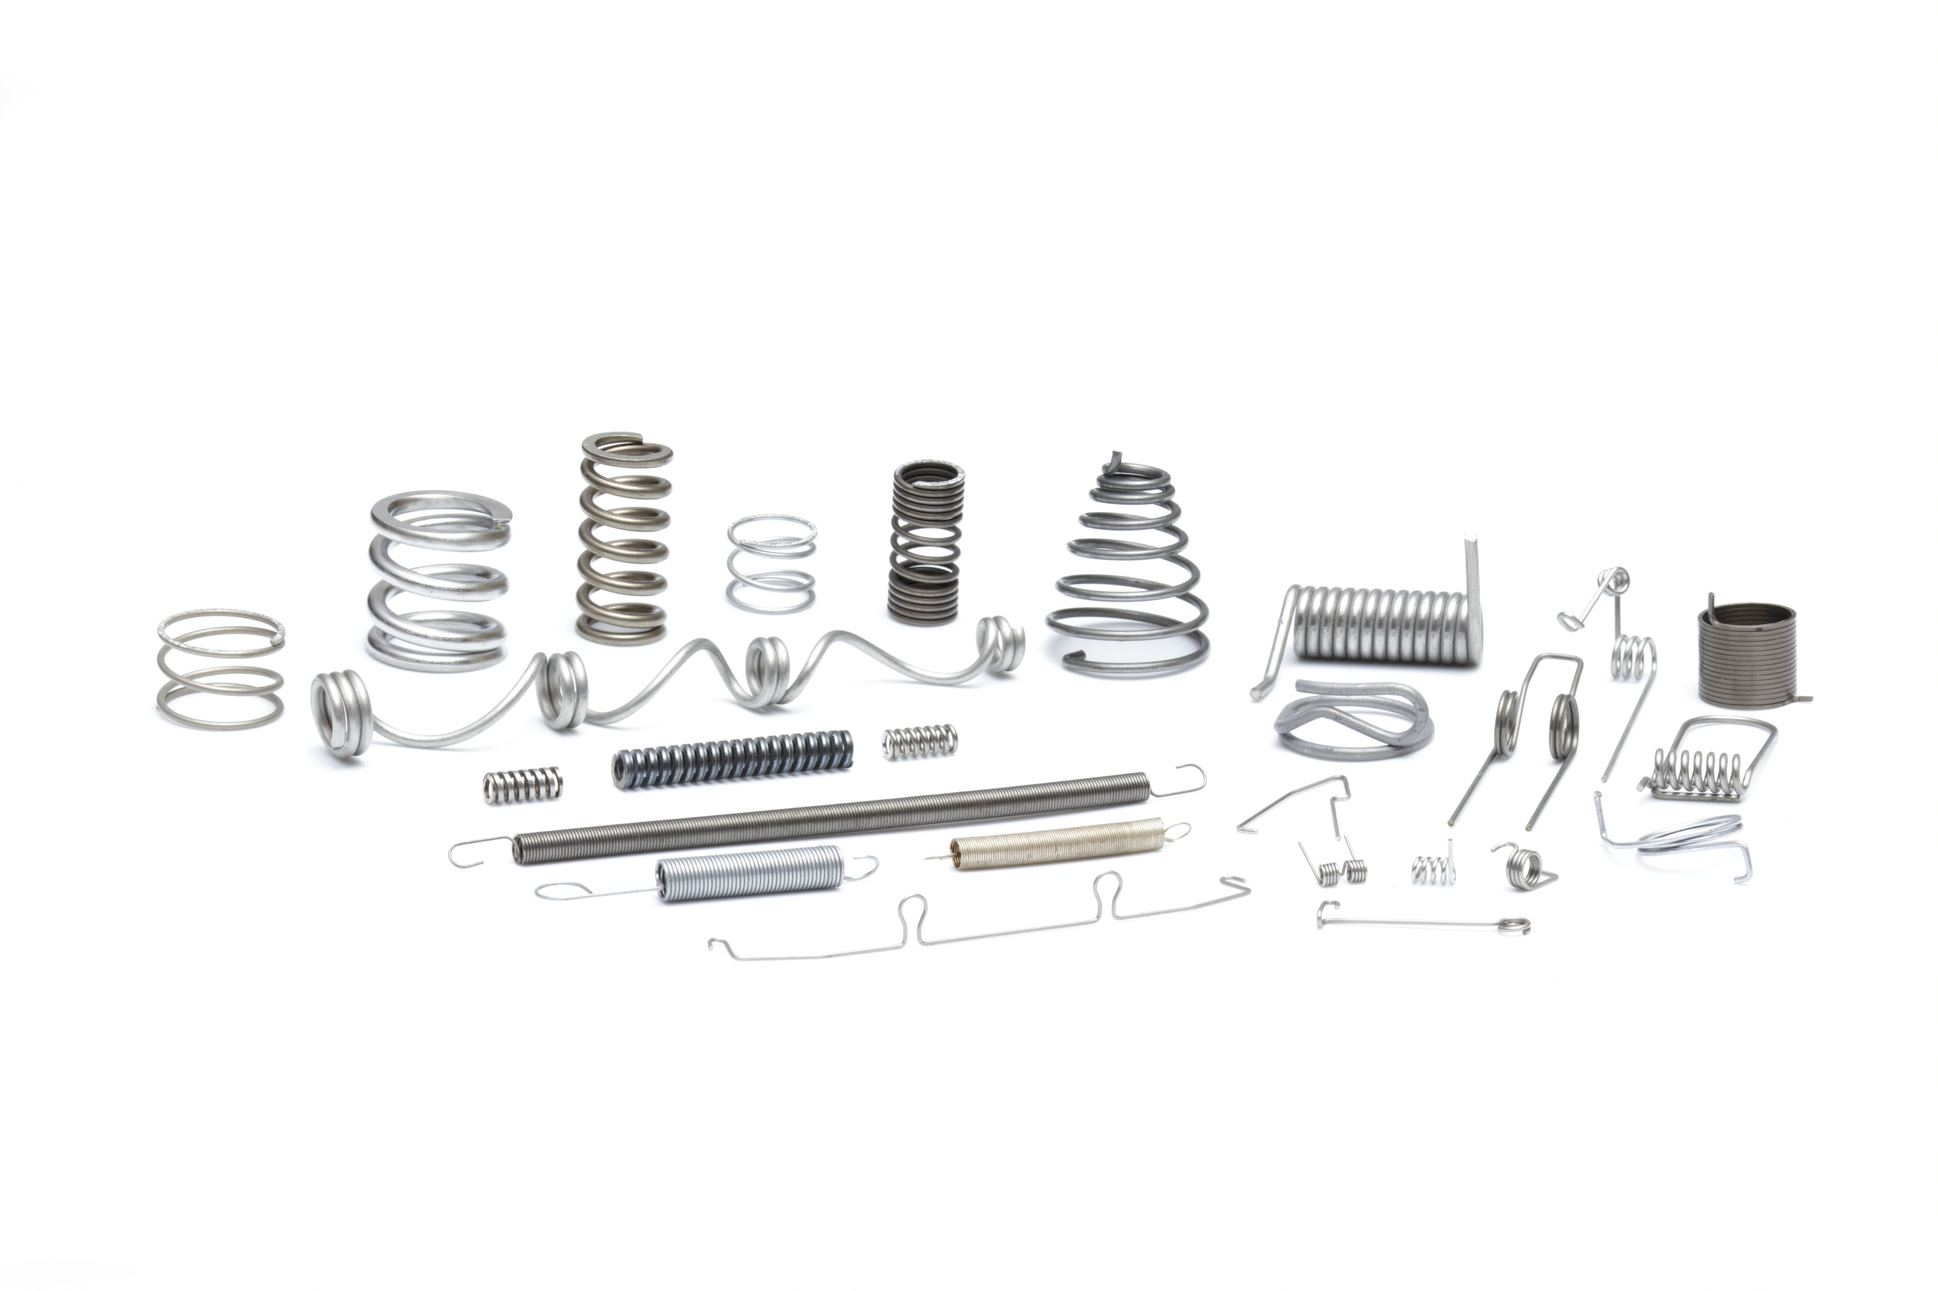 MW Life Sciences medical components manufacturing